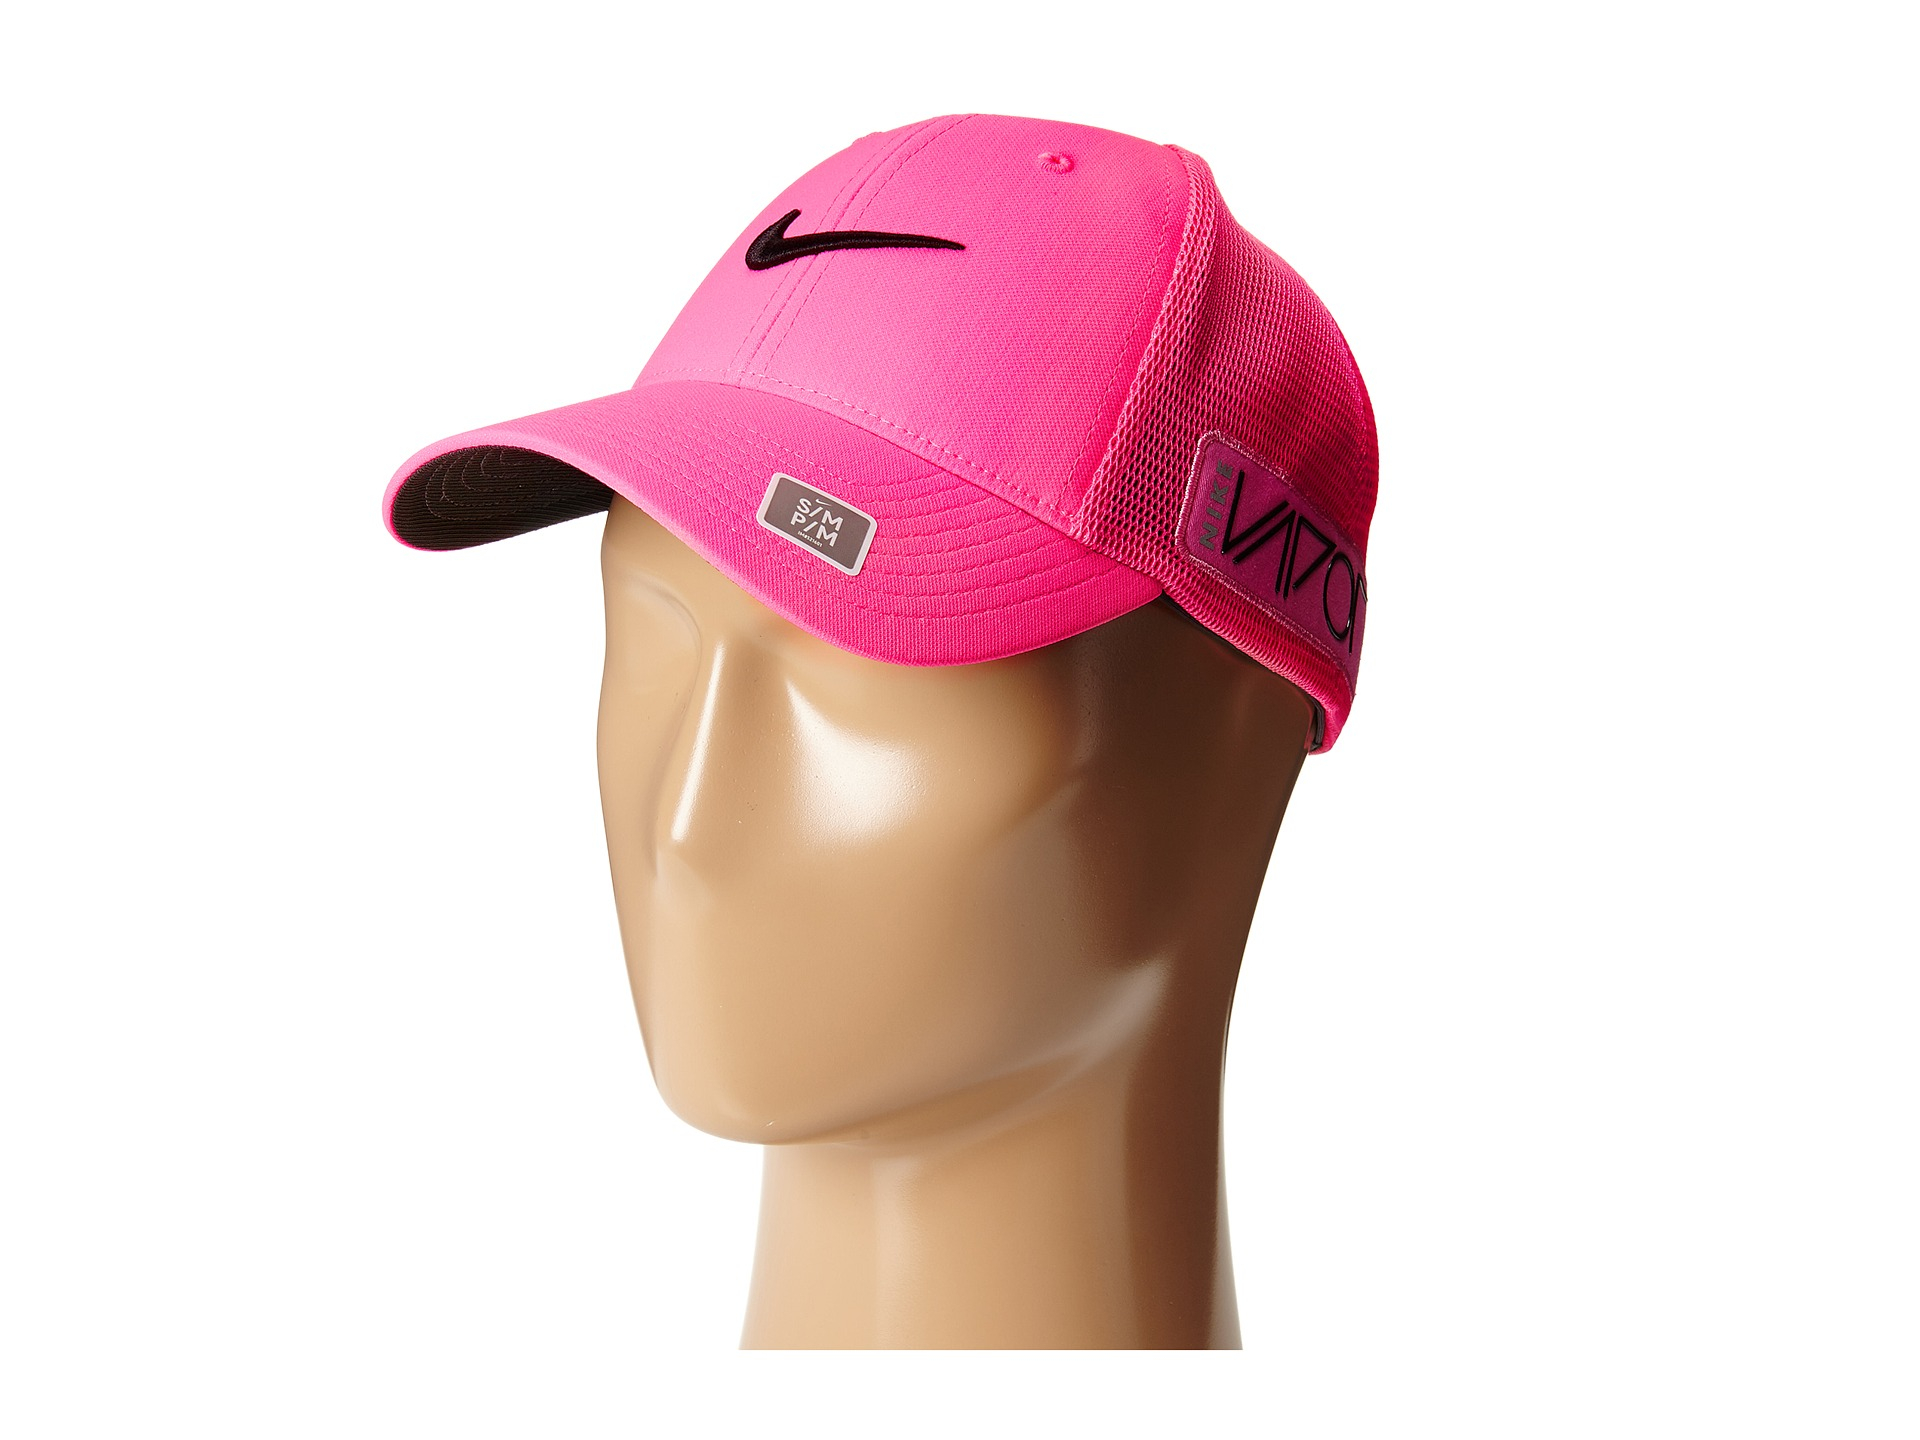 d0b276a868f Lyst - Nike Tour Legacy Mesh Cap in Pink for Men